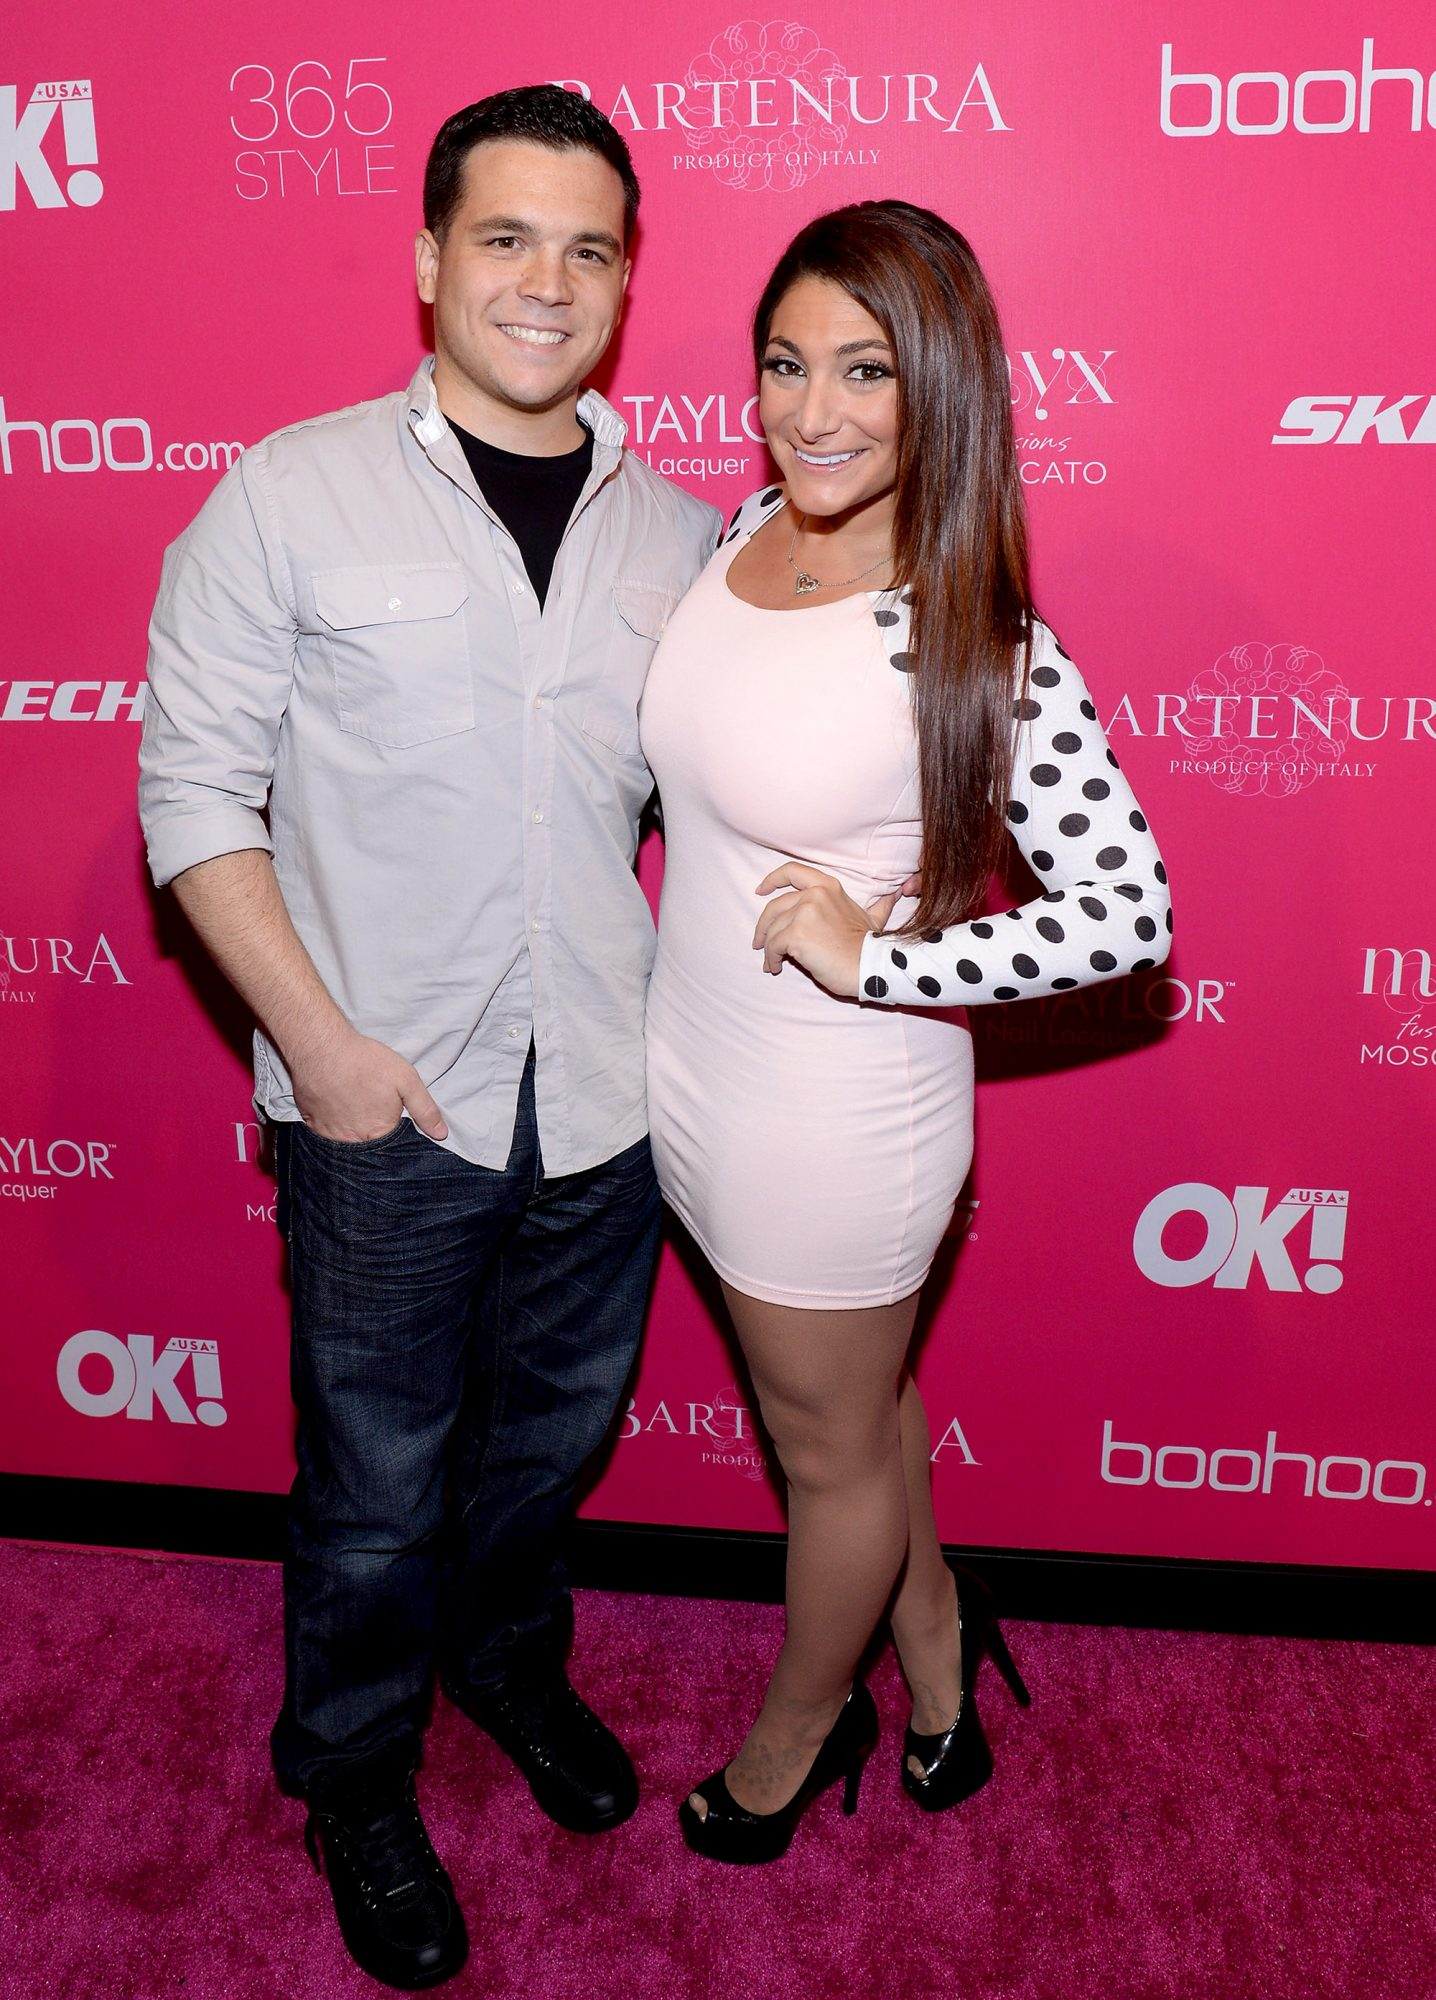 Jersey Shore's Deena Cortese Gets Engaged in Mexico   PEOPLE.com